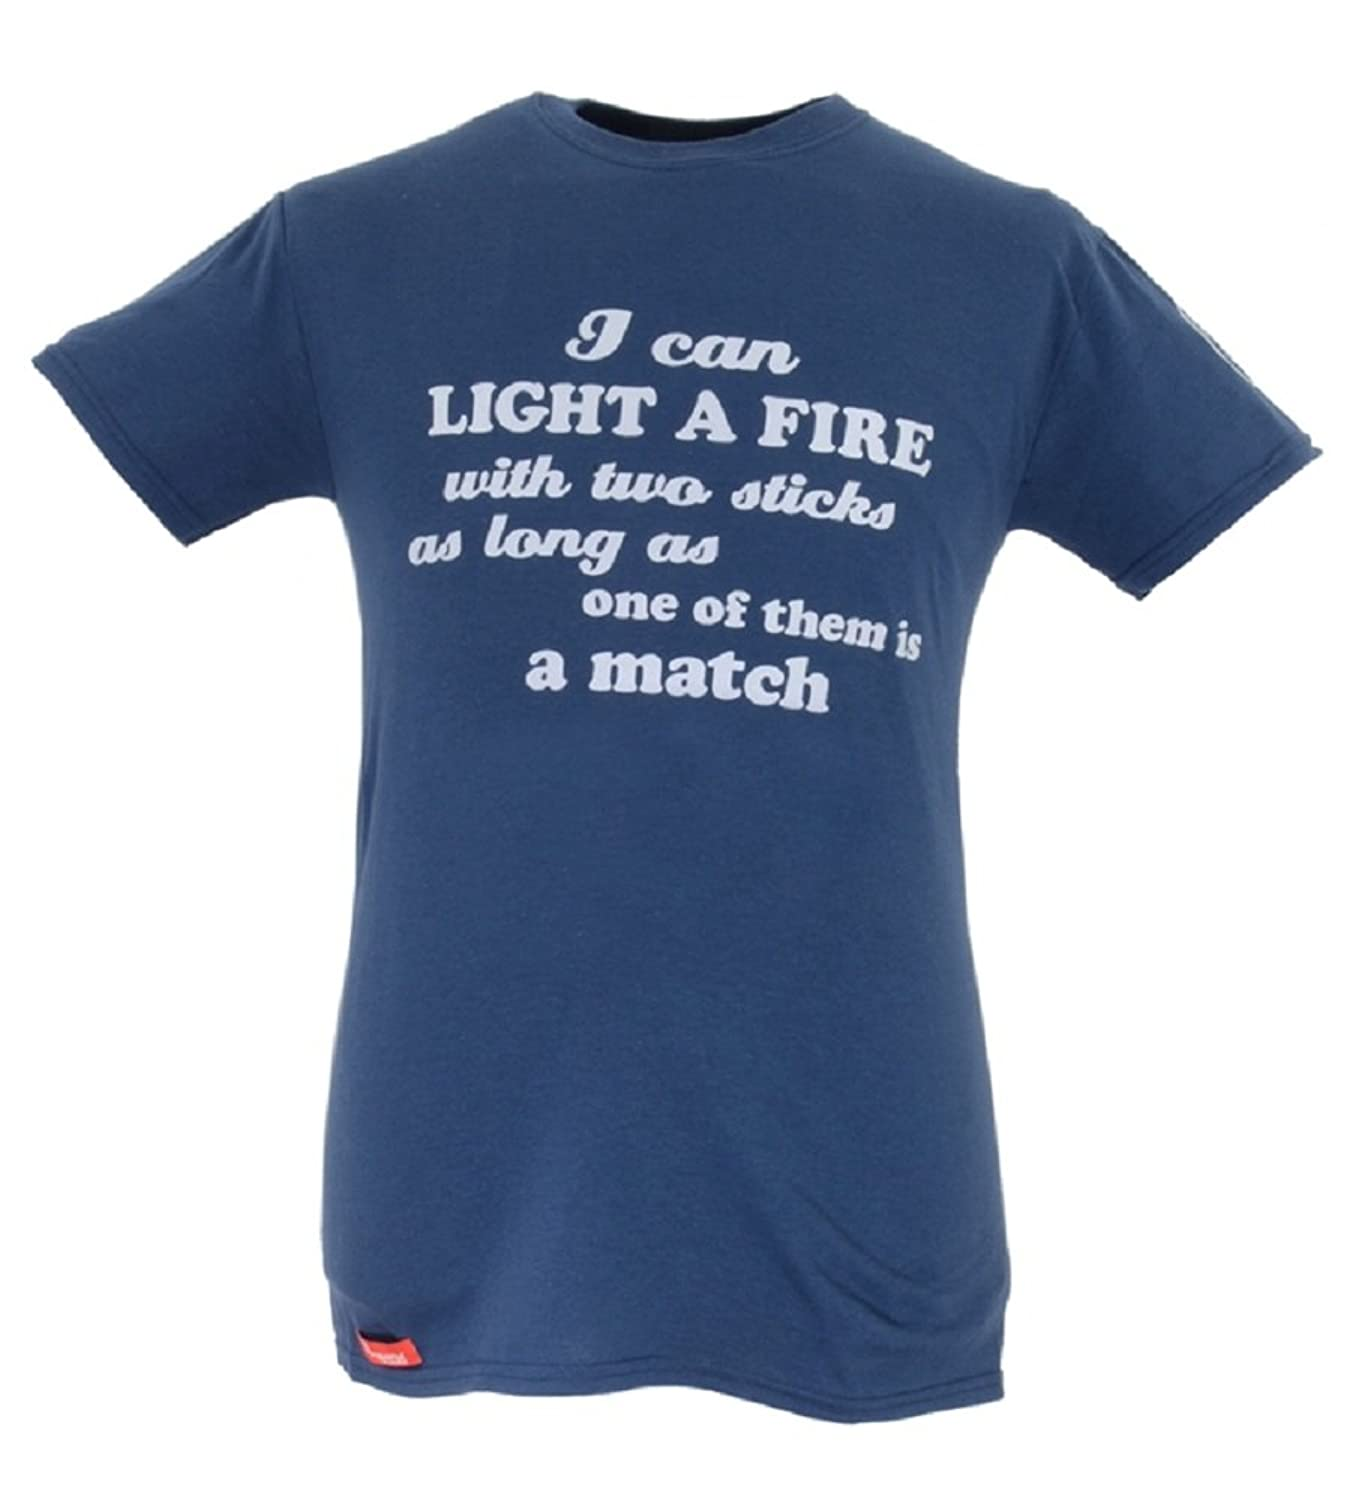 Scout Heritage 'I Can Light a Fire' Tshirt - Official Scout Clothing